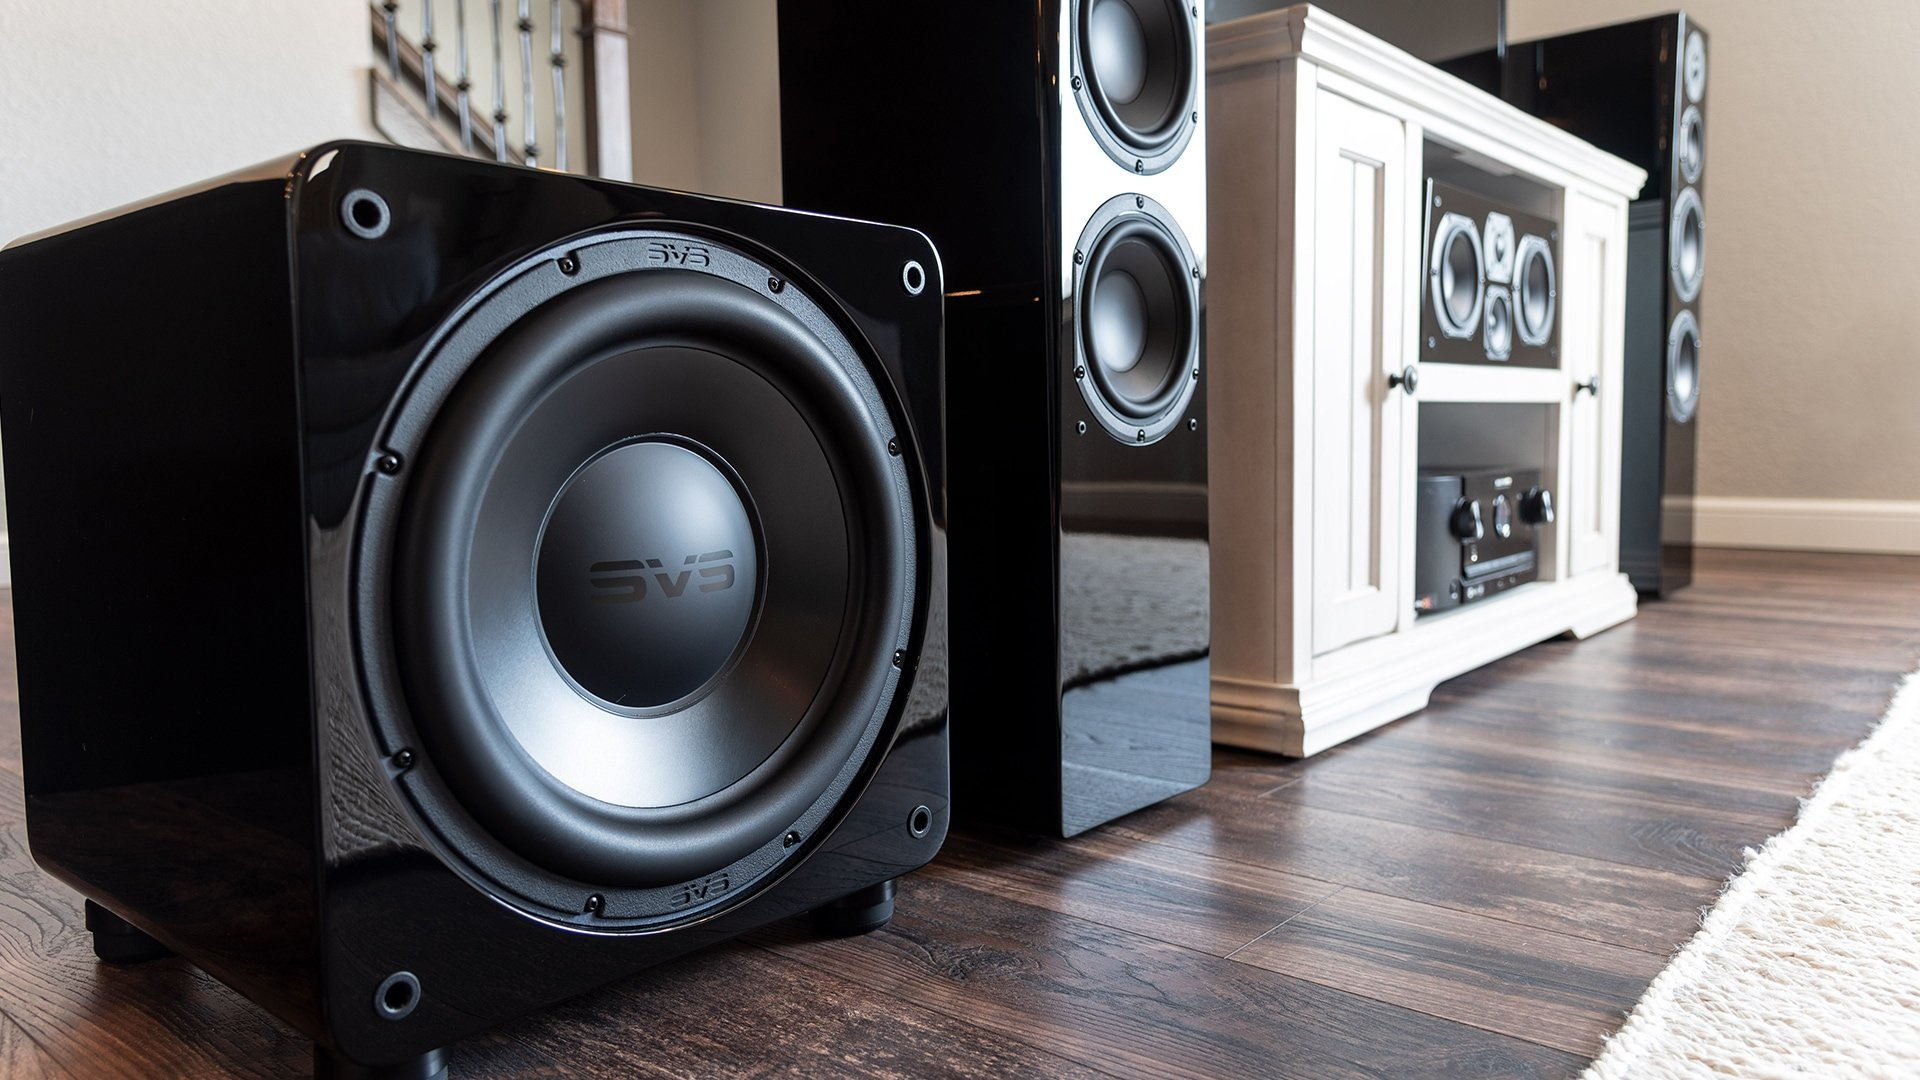 Subwoofer Calibration Tutorial: How to Make Your Home Theater Sub Sound Better